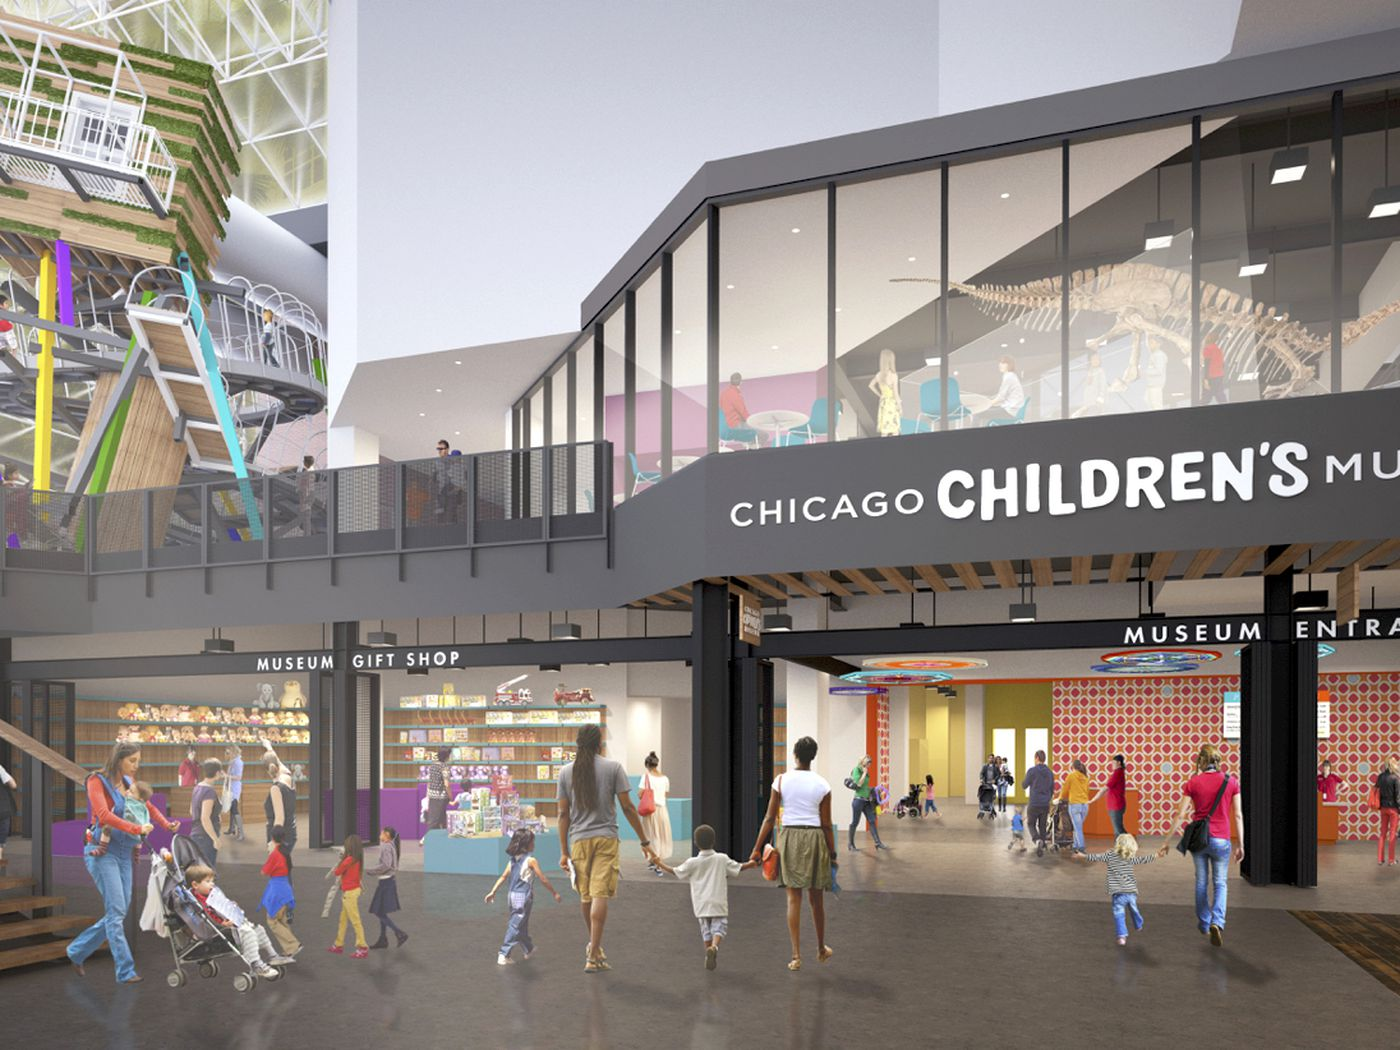 Chicago Childrens Museum Gets Redesign New Climbing Wall